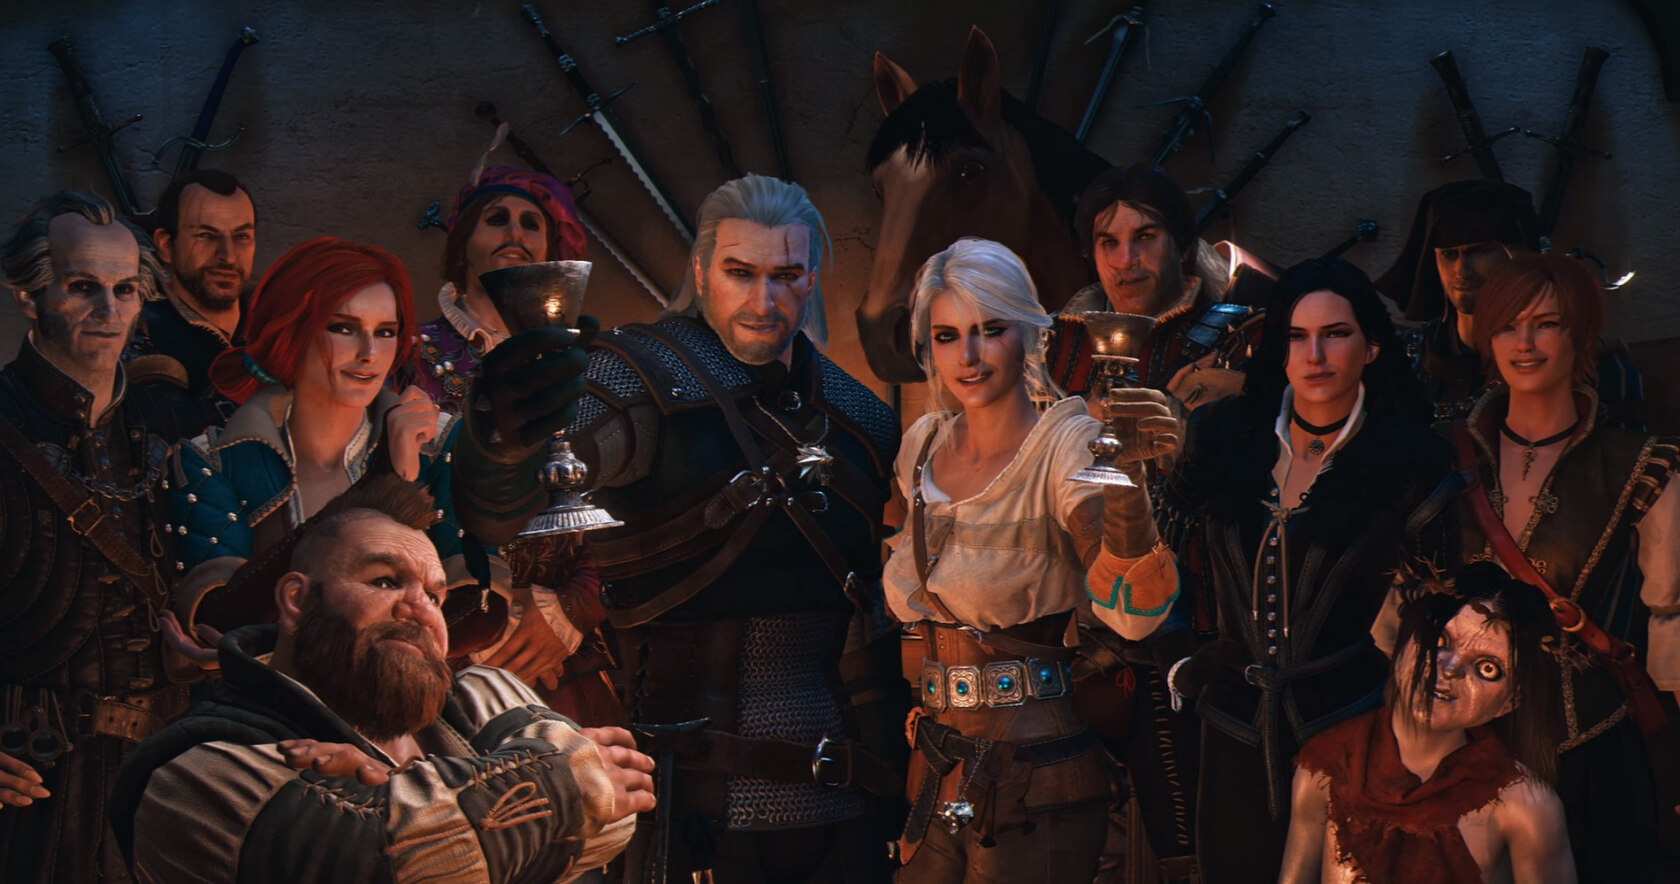 More Witcher Games Are Coming, Confirms CD Projekt Red